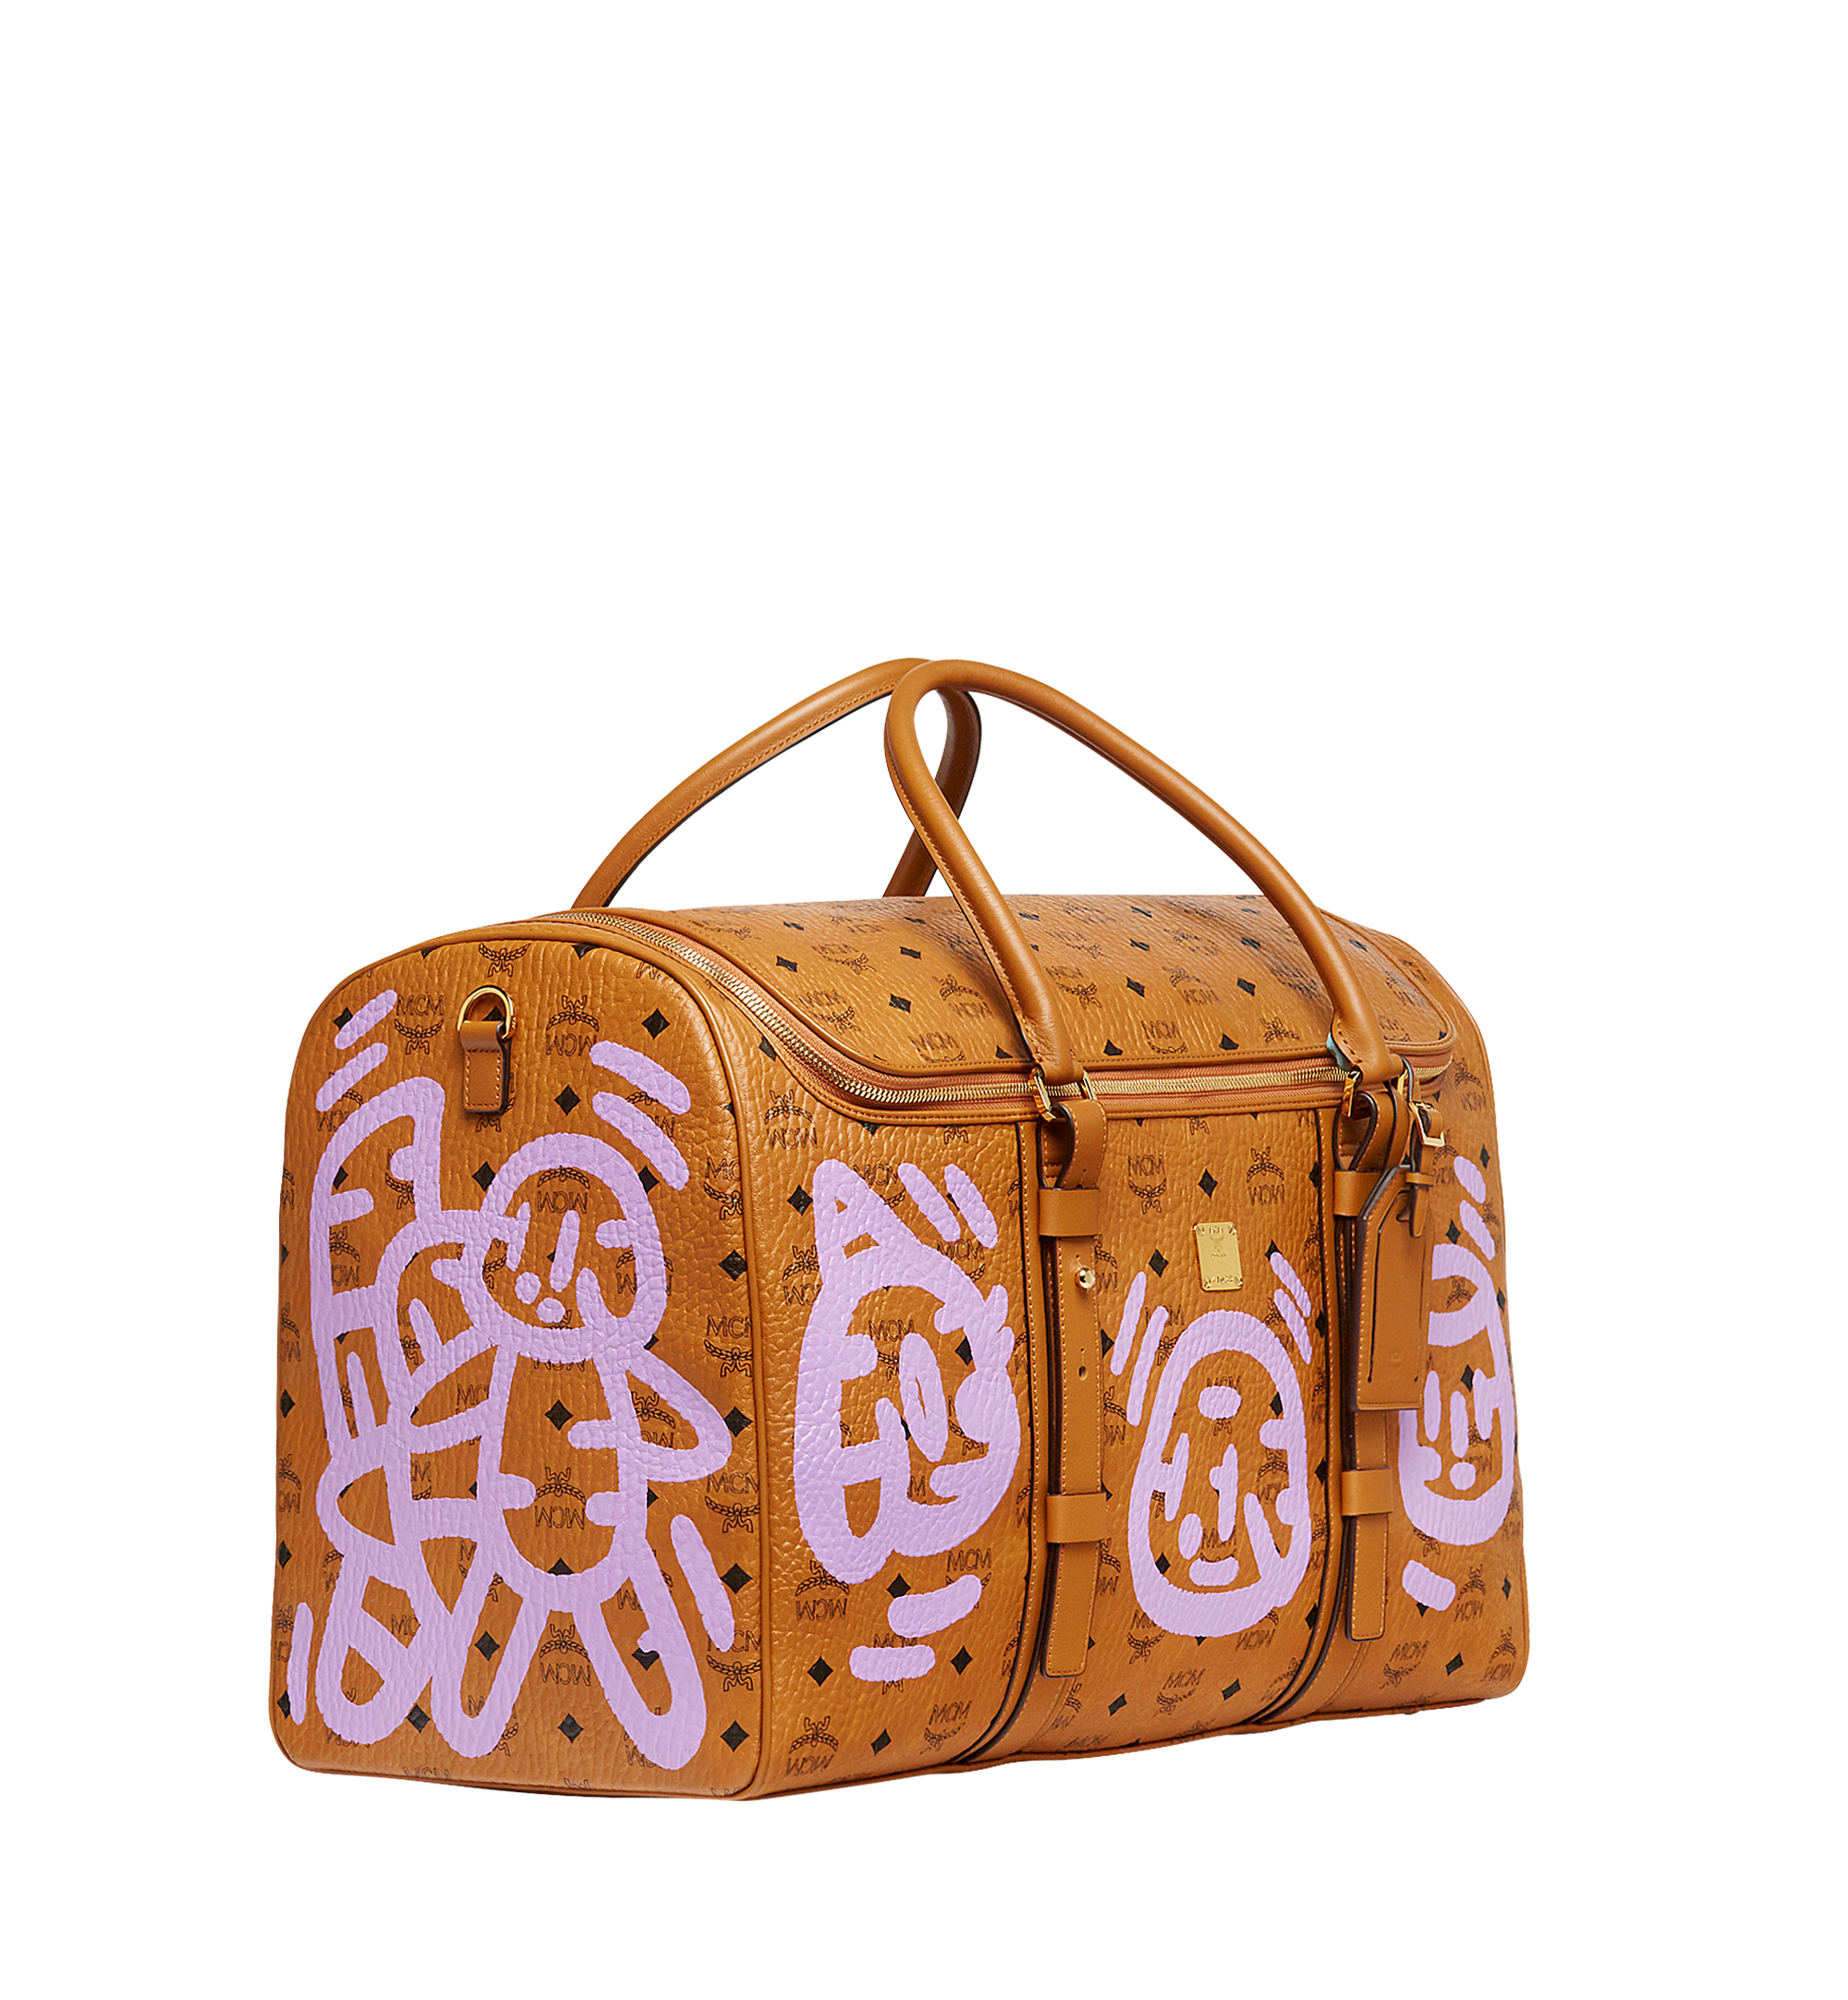 MCM_X_Eddie_Kang_Auction_Piece___Dog_Carrier_HQ_8.png